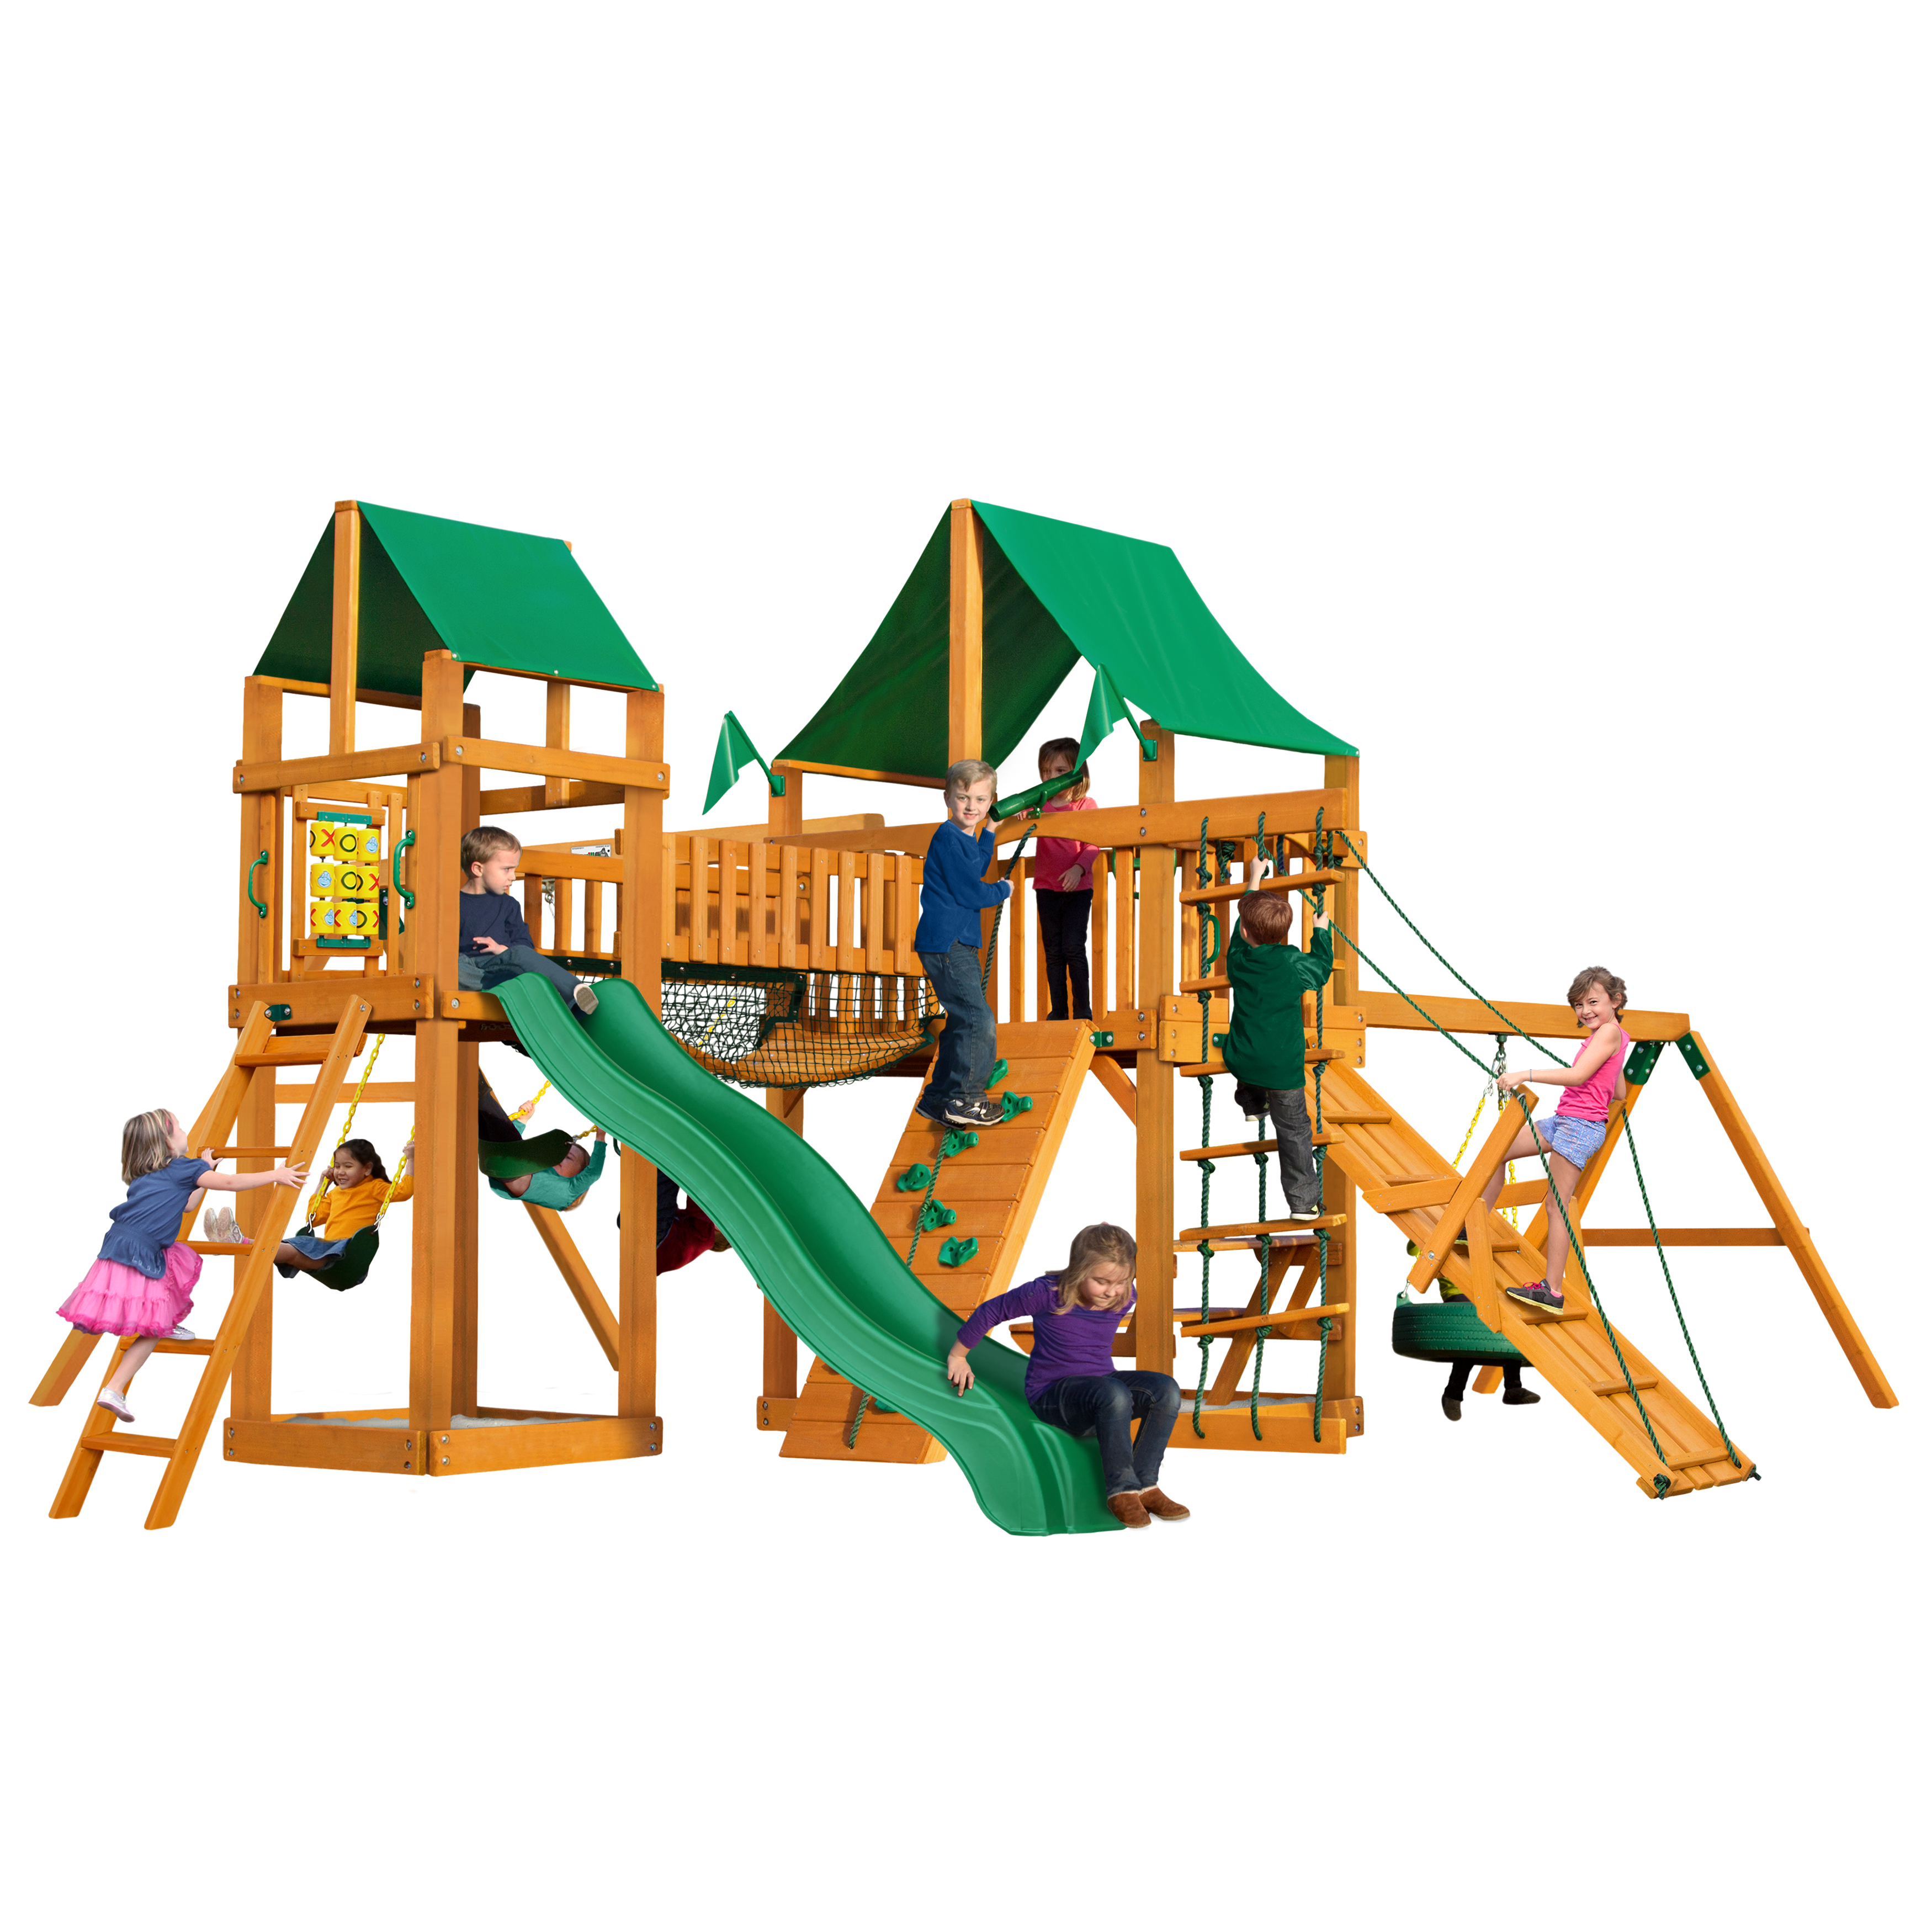 Gorilla Playsets Pioneer Peak Swing Set with Natural Cedar Posts and Deluxe Green Vinyl Canopy